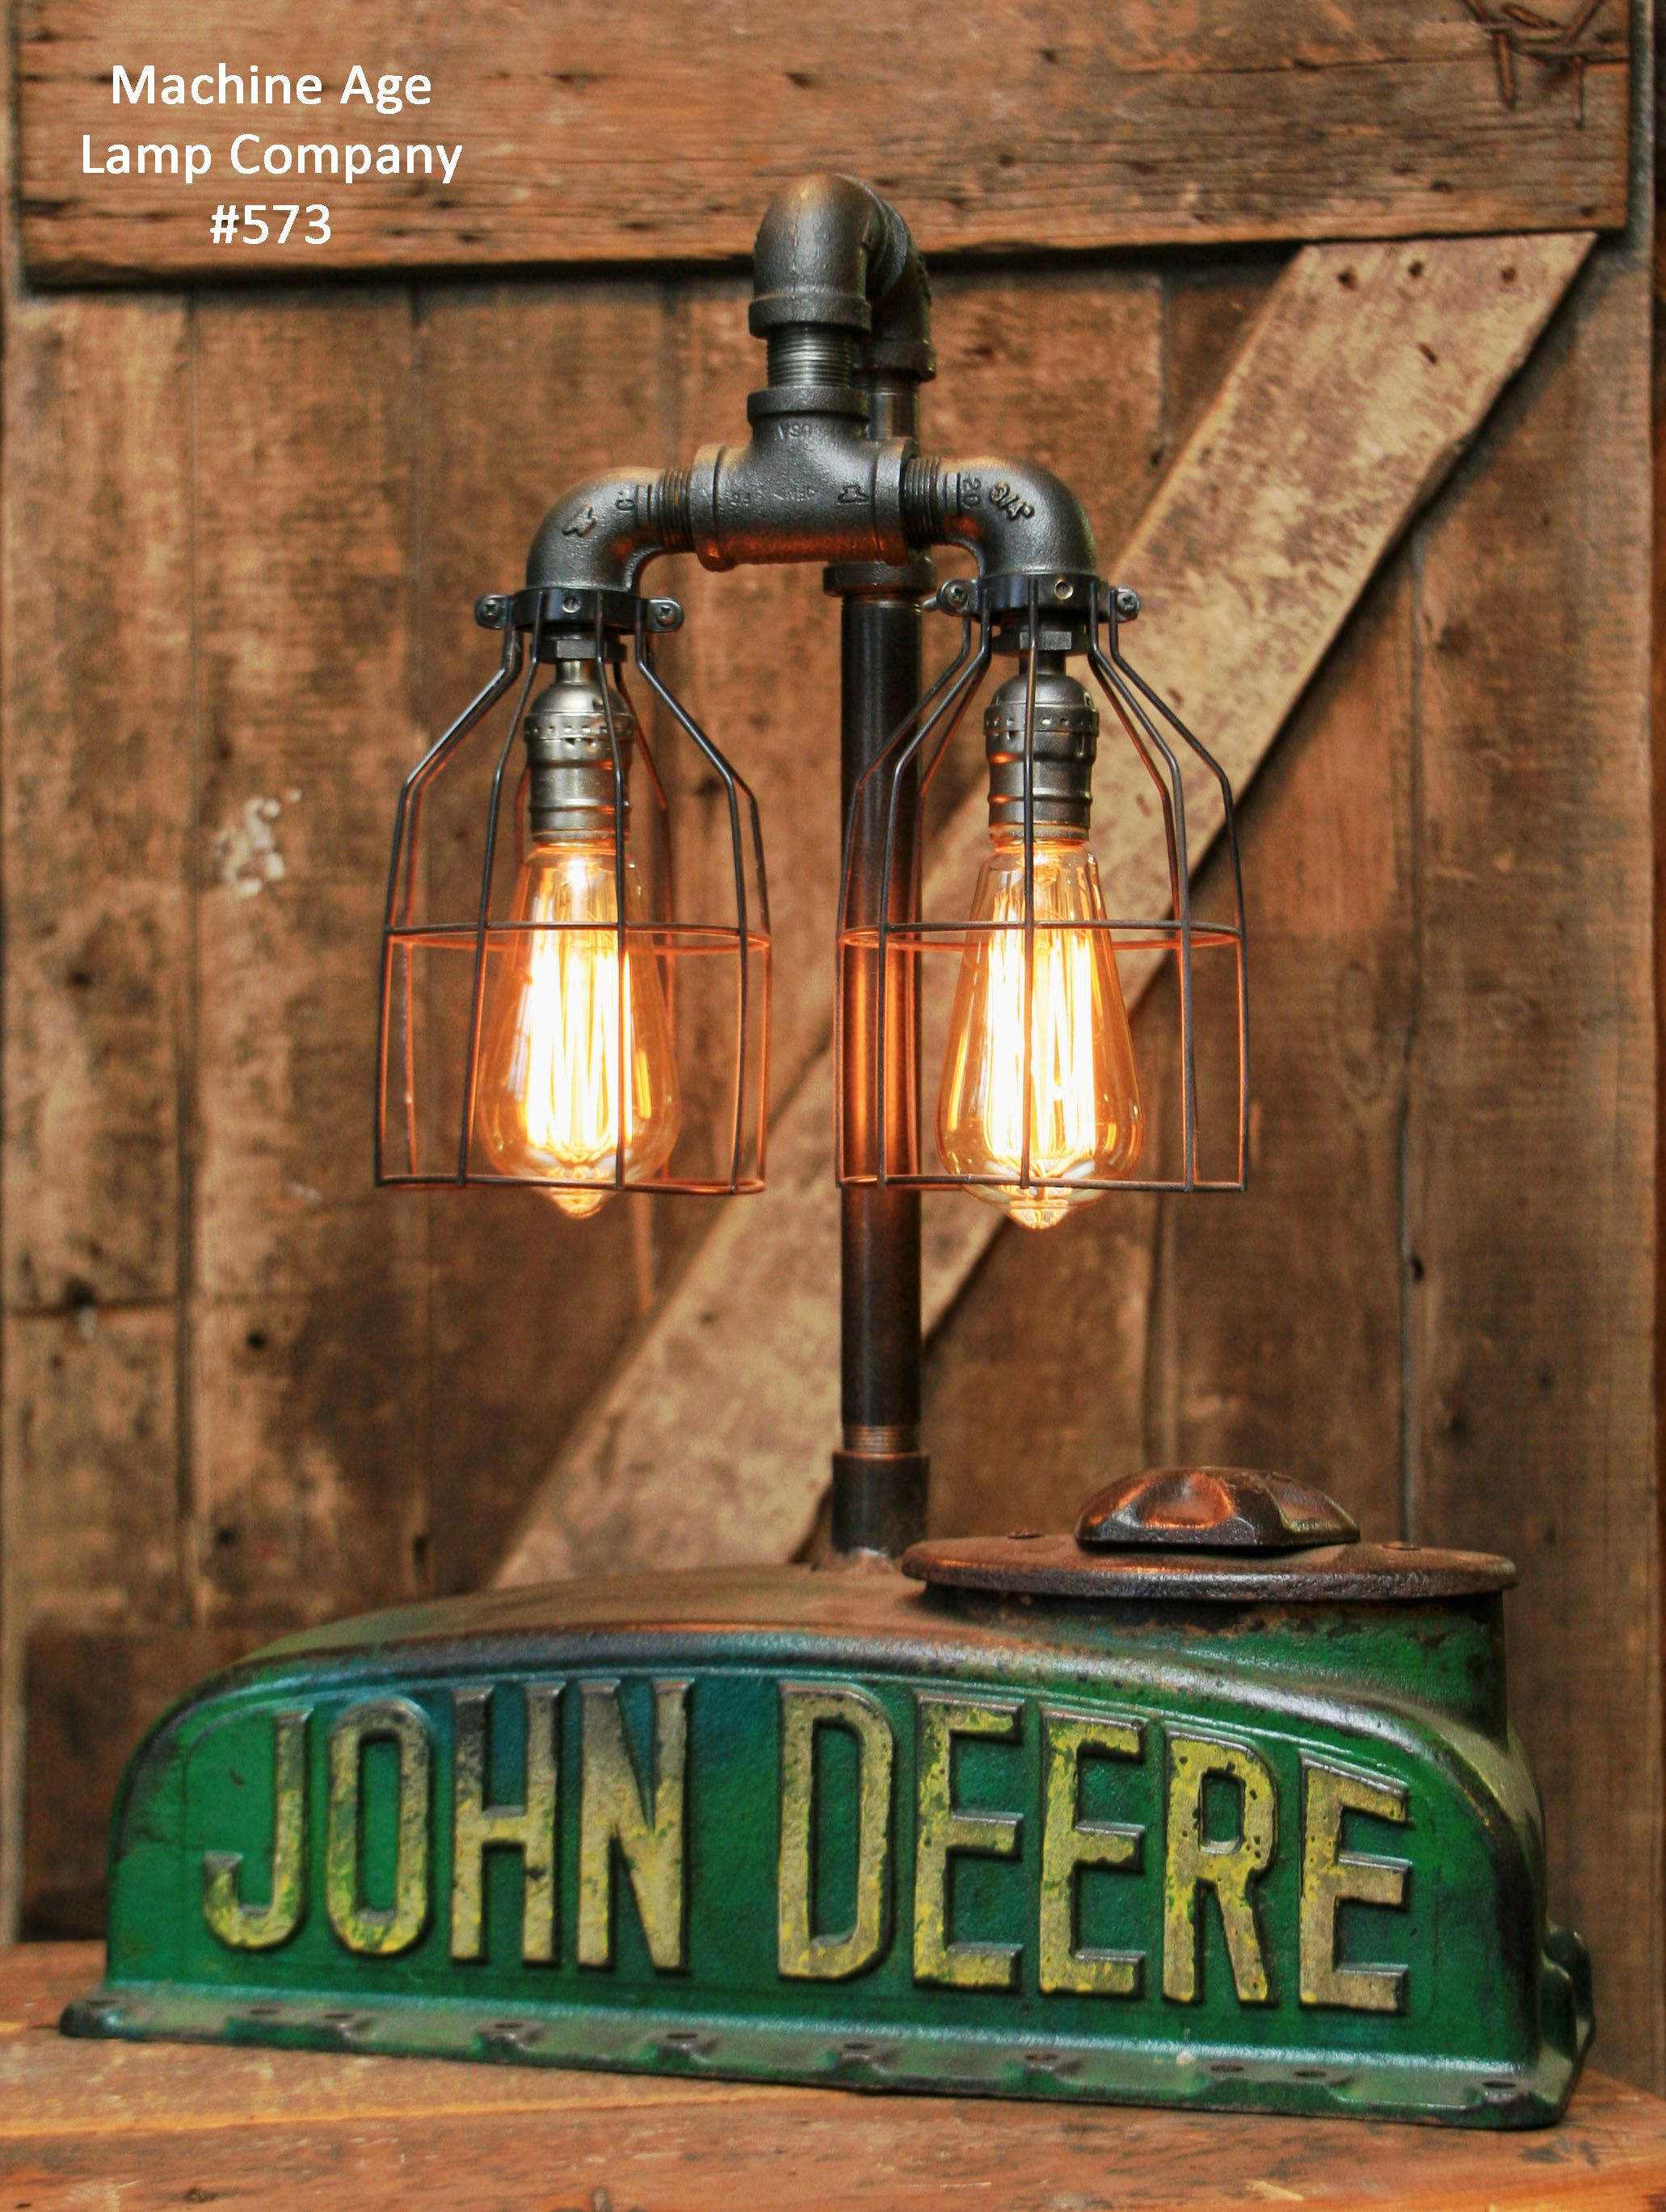 Steampunk industrial lamp antique john deere a farm tractor john deere desk or table lamp vintage radiator from a model a 1930s made by the machine age lamp company steampunk industrial aloadofball Images